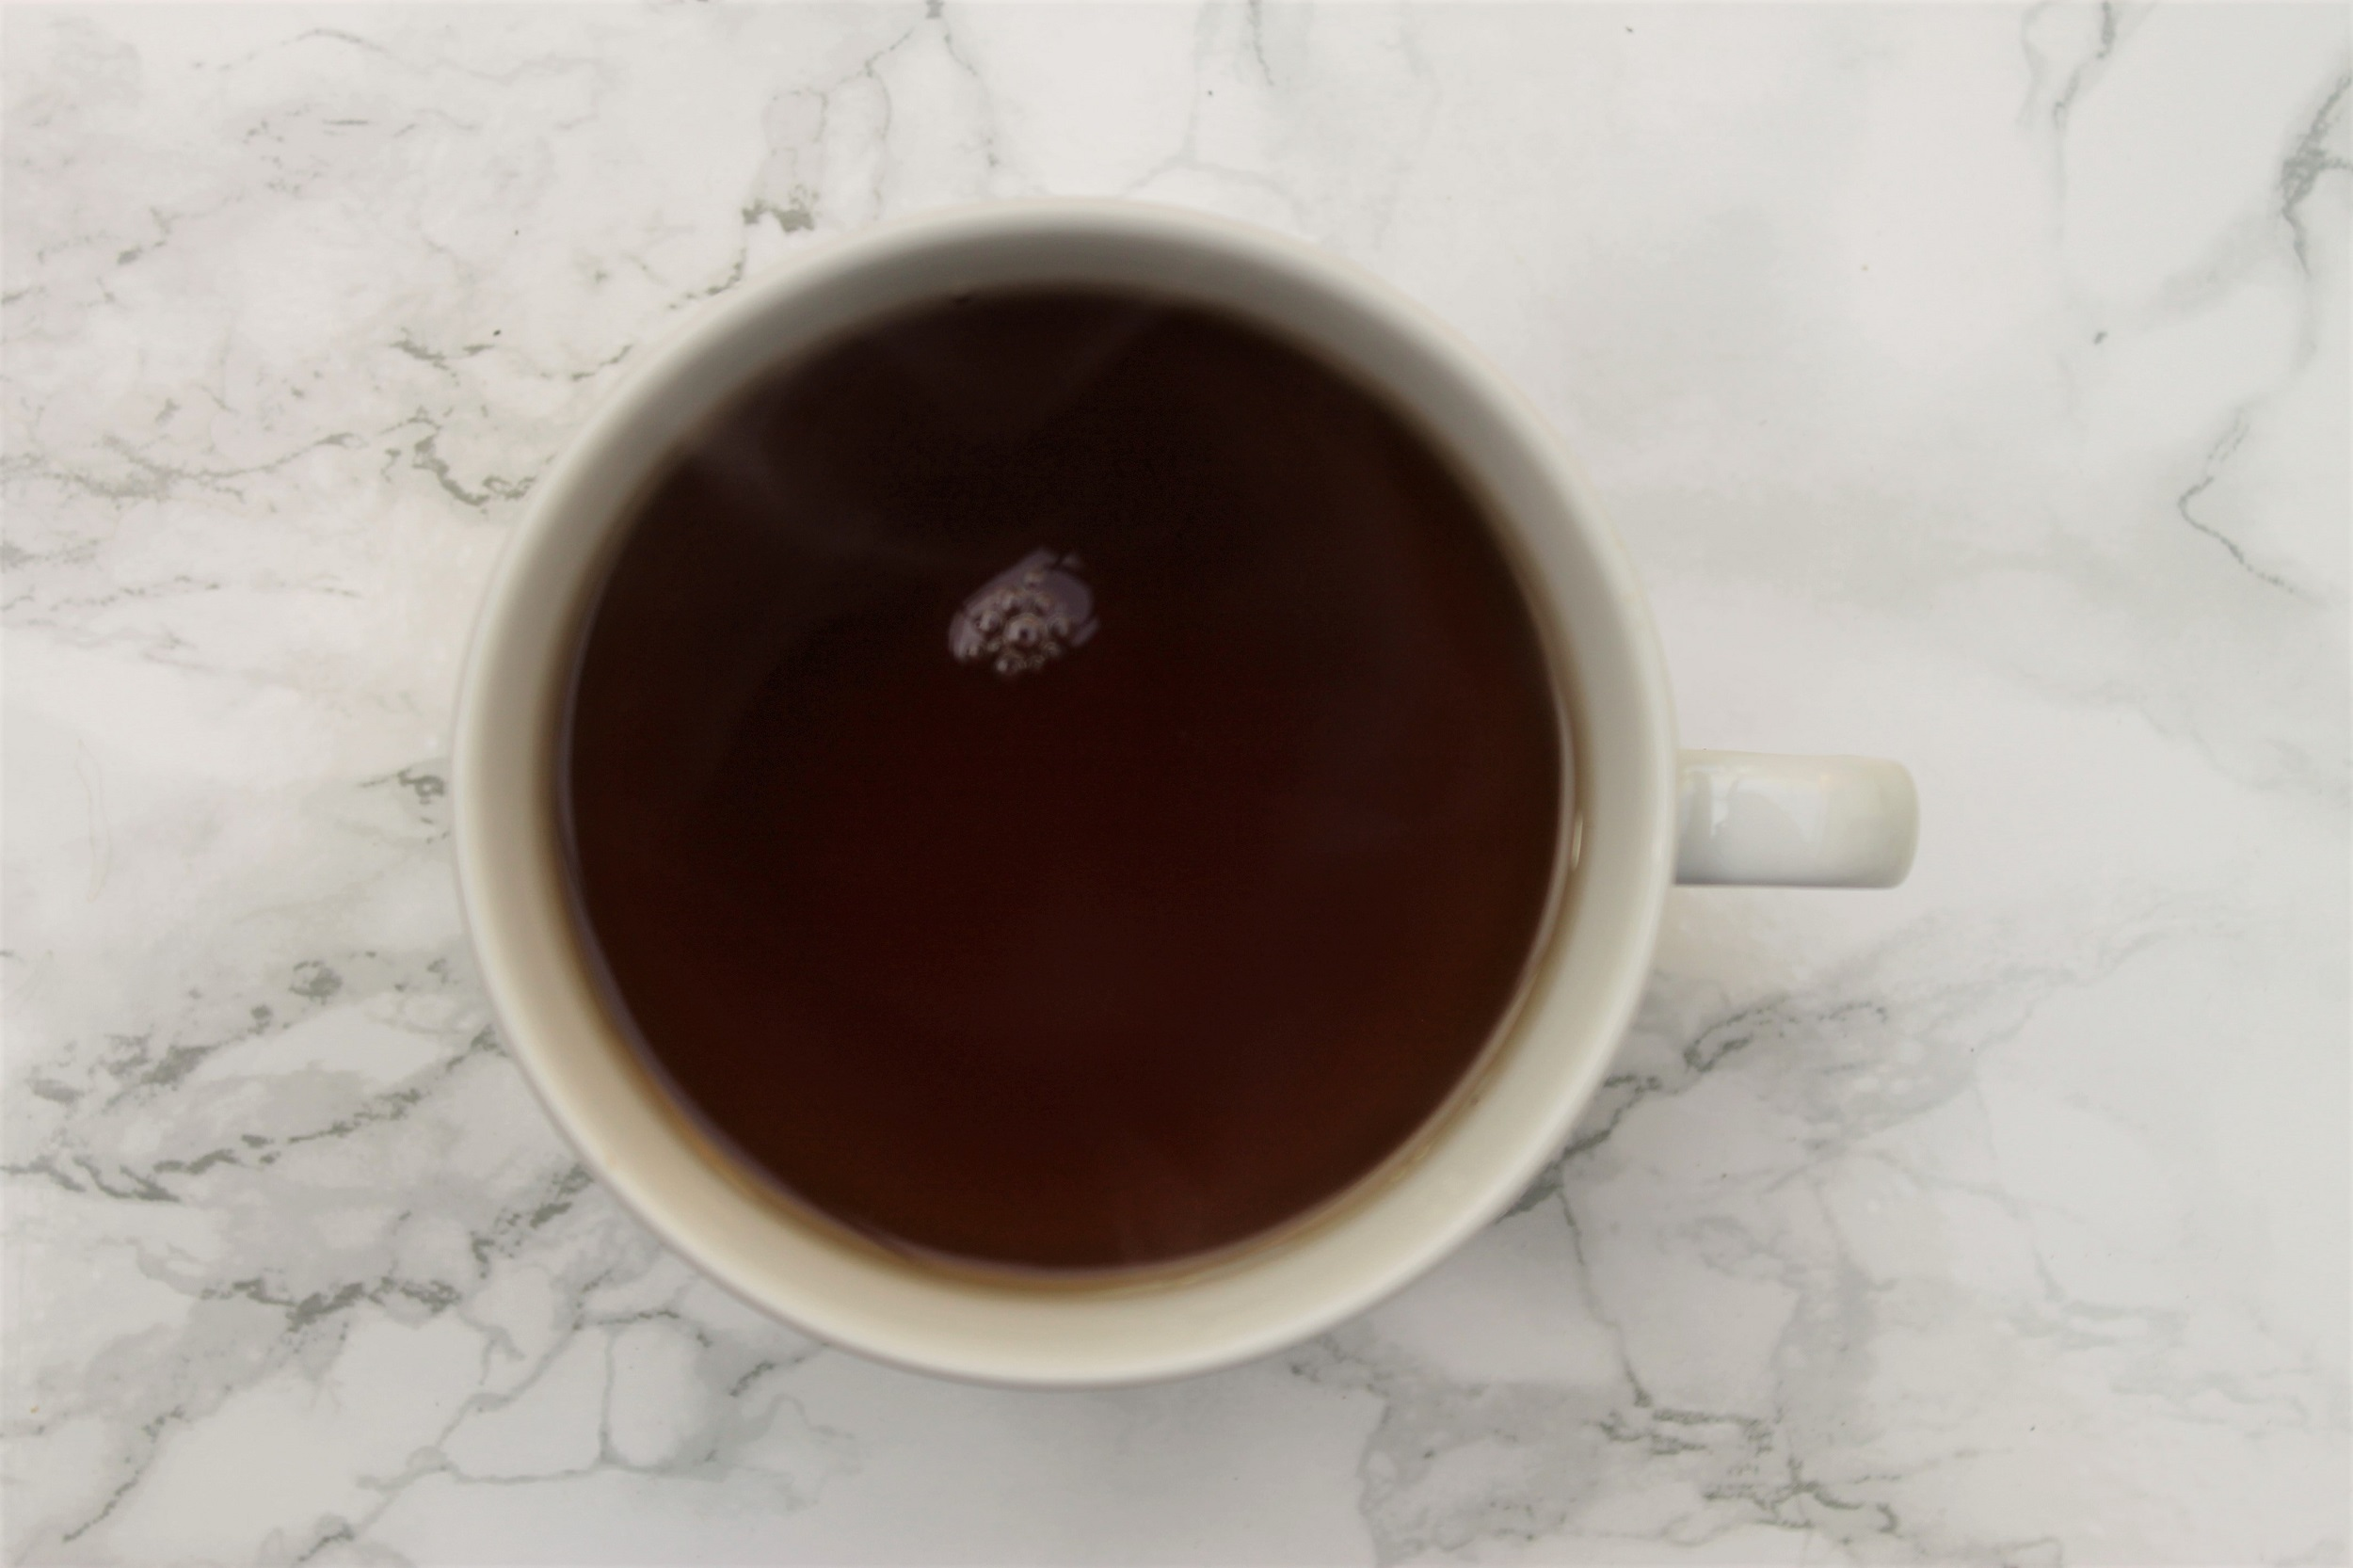 black tea with hibiscus flavouring